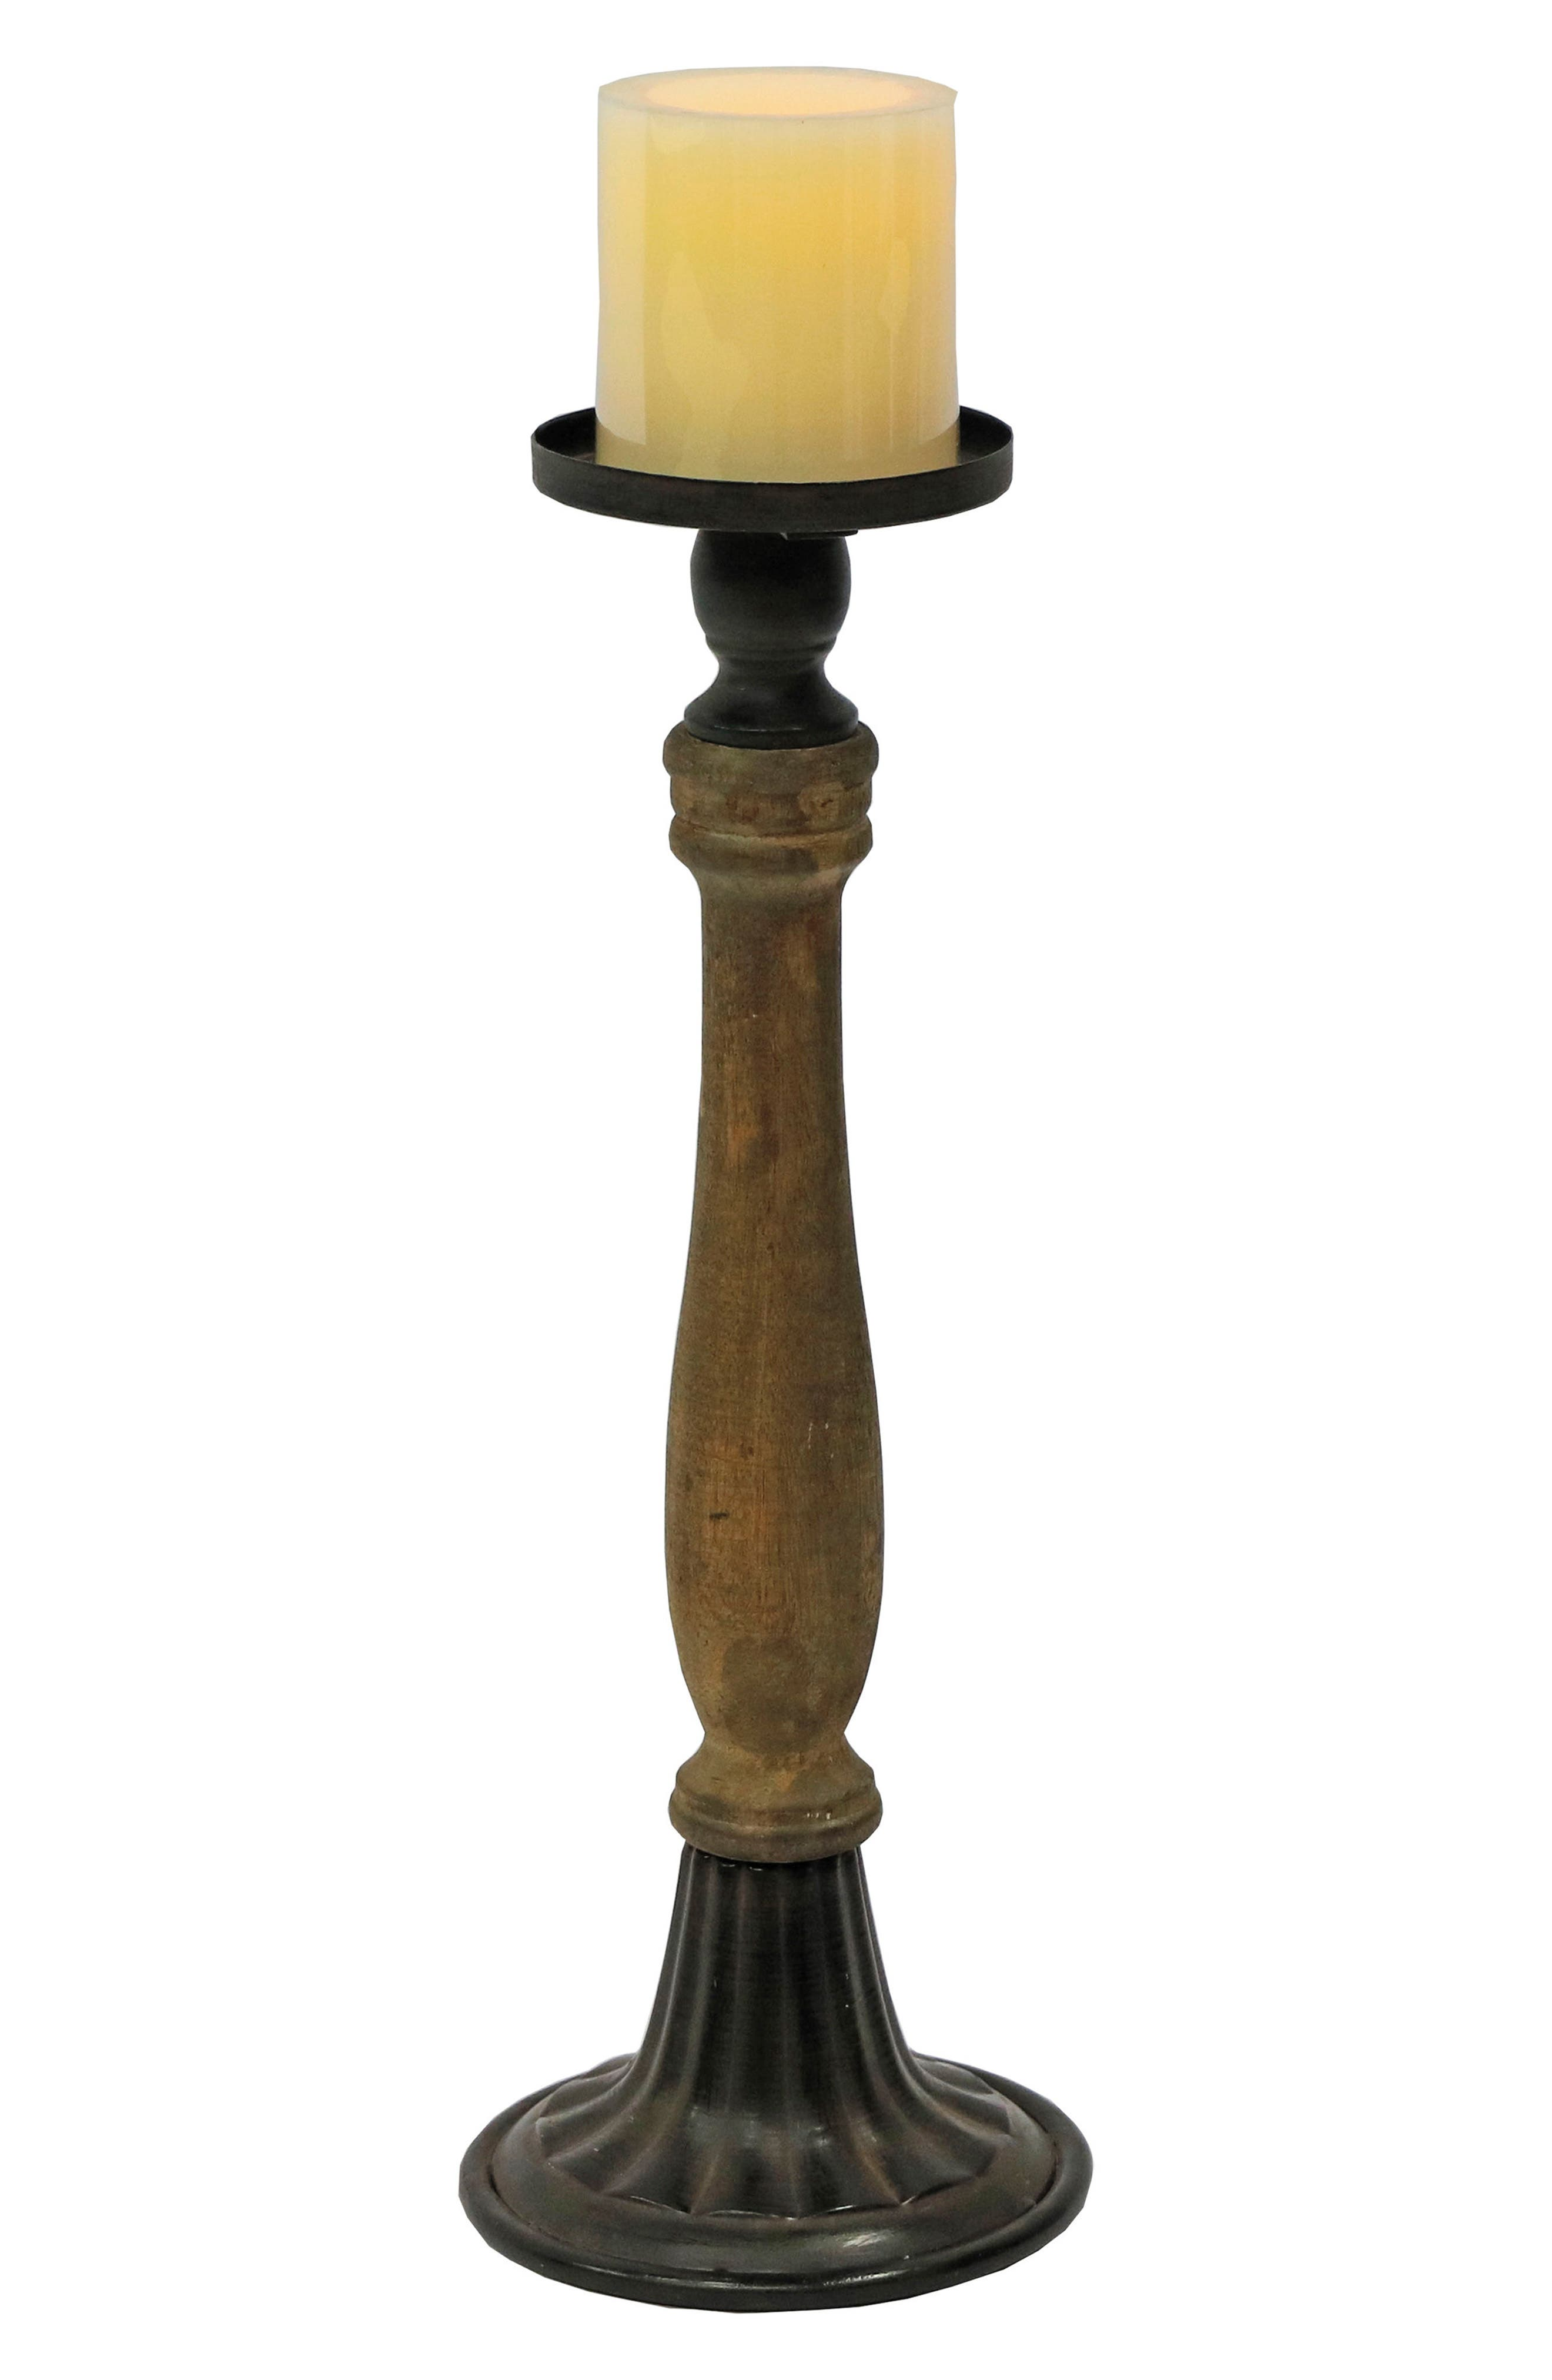 Alternate Image 1 Selected - Foreside Large Spindle Pillar Candle Holder